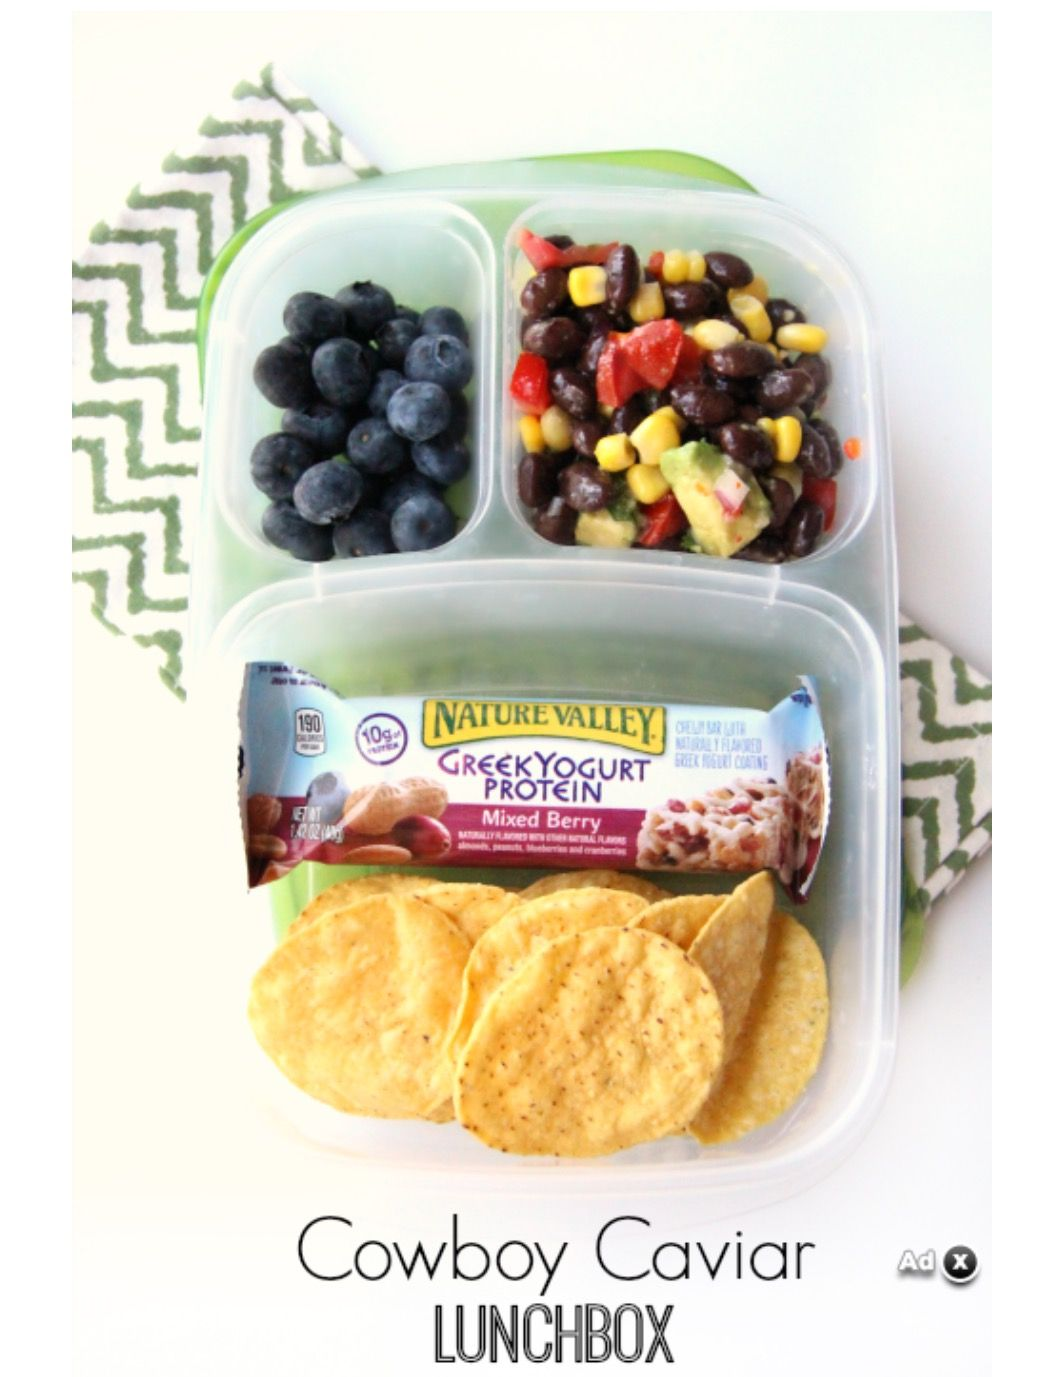 Pin by mandy sarver on packed lunches pinterest lunches over 50 healthy work lunchbox ideas family fresh meals forumfinder Gallery